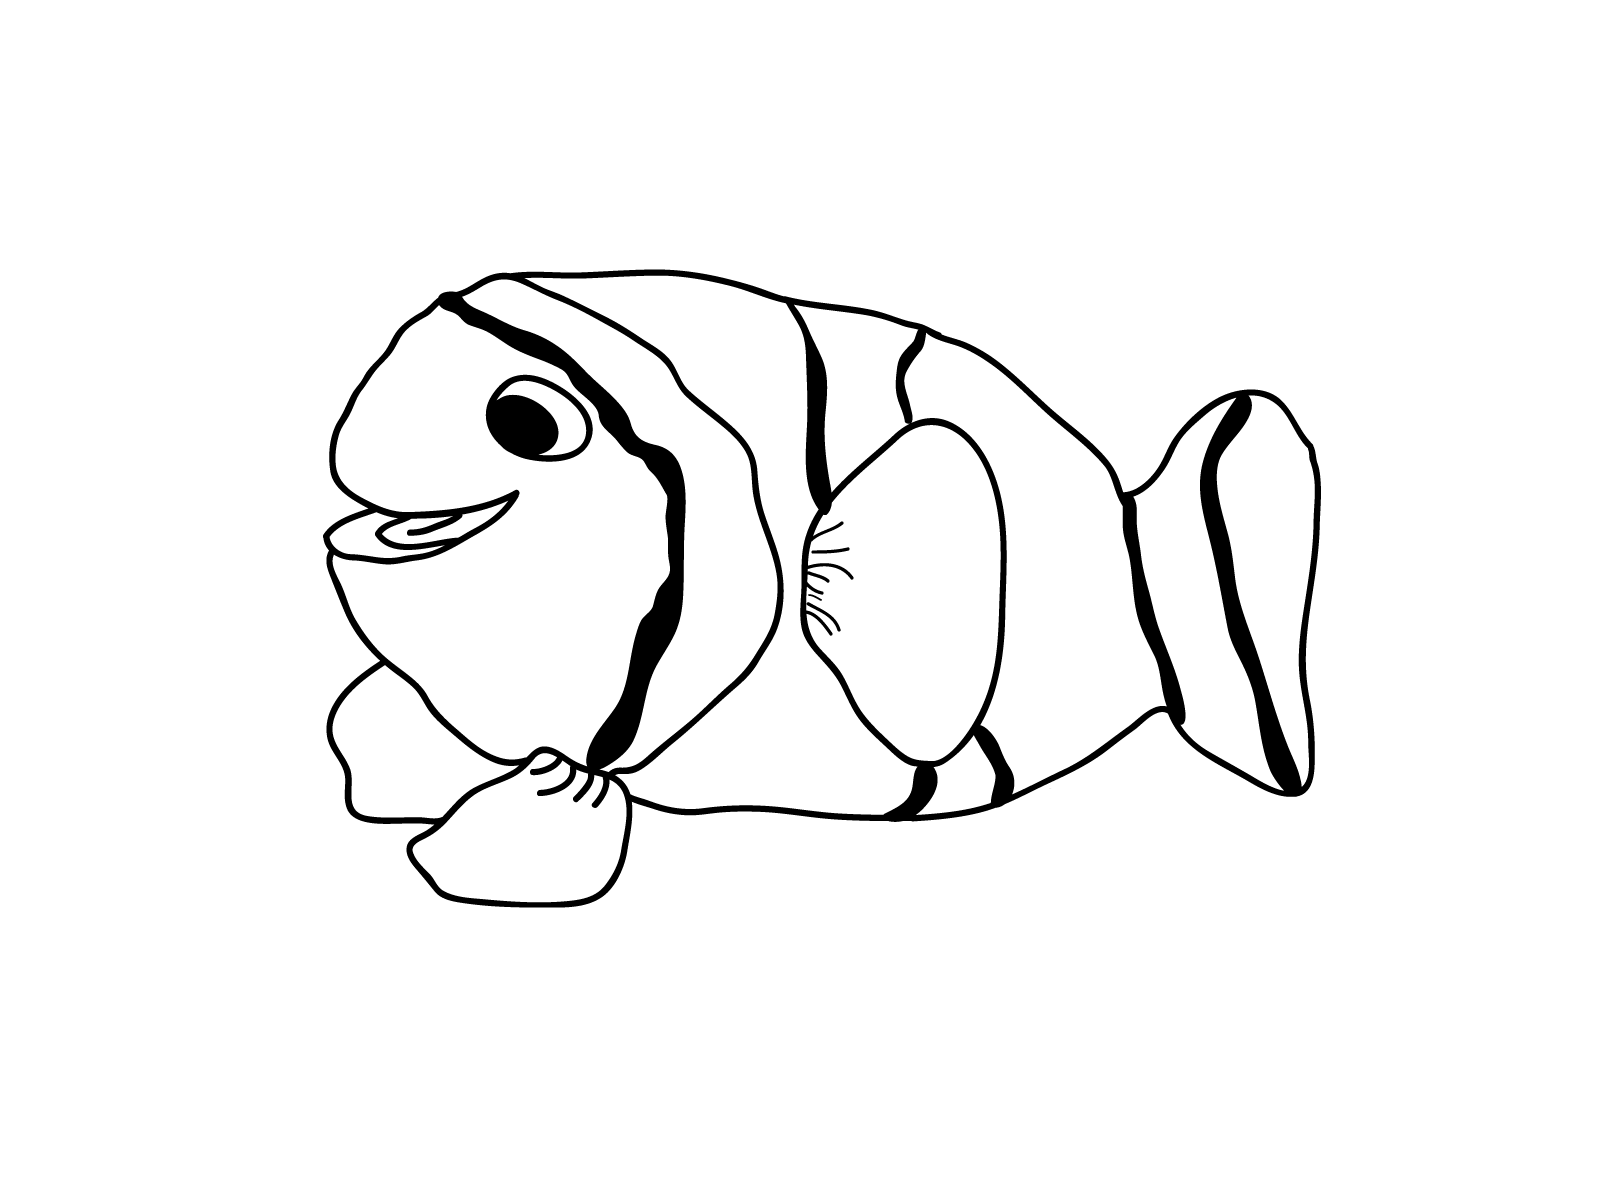 fish to color goldfish coloring pages download and print goldfish fish to color